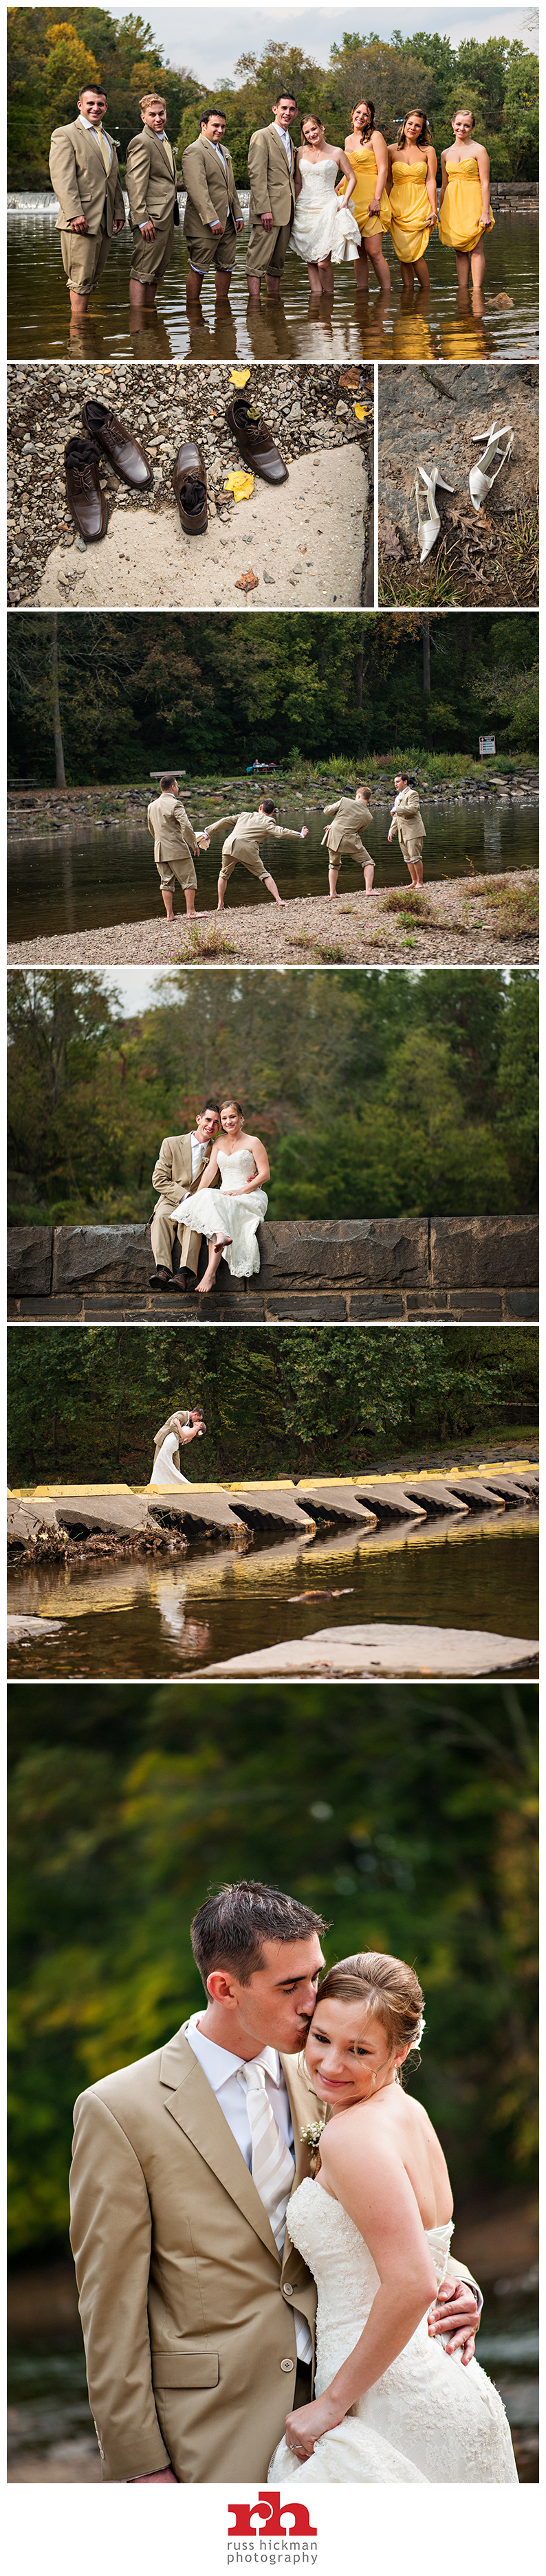 Philadelphia Wedding Photographer NKWB0003